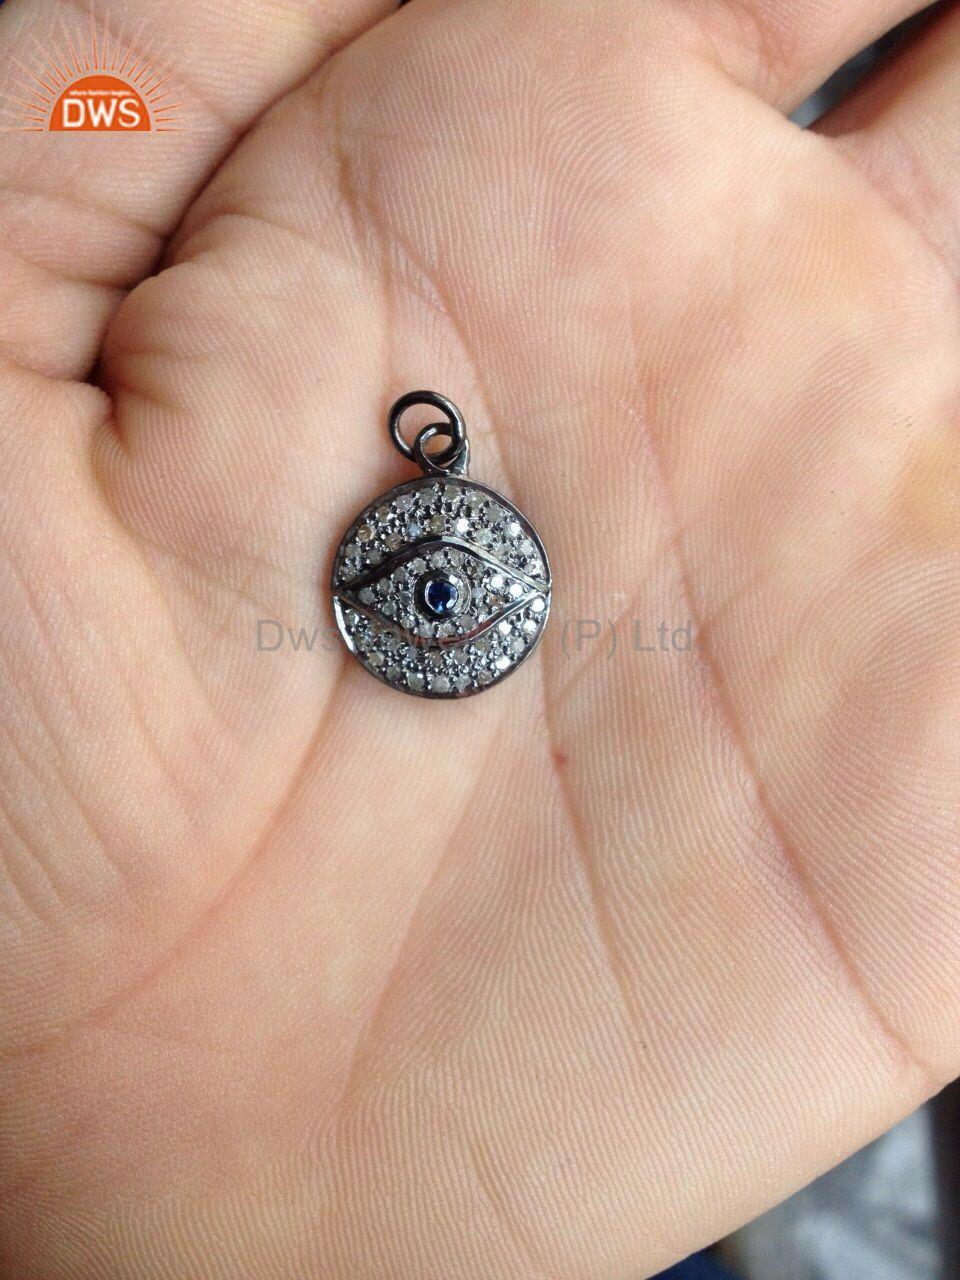 Evil Eye Charm Pendant Real Diamond Pave Blue Sapphire Gemstone Silver Jewelry